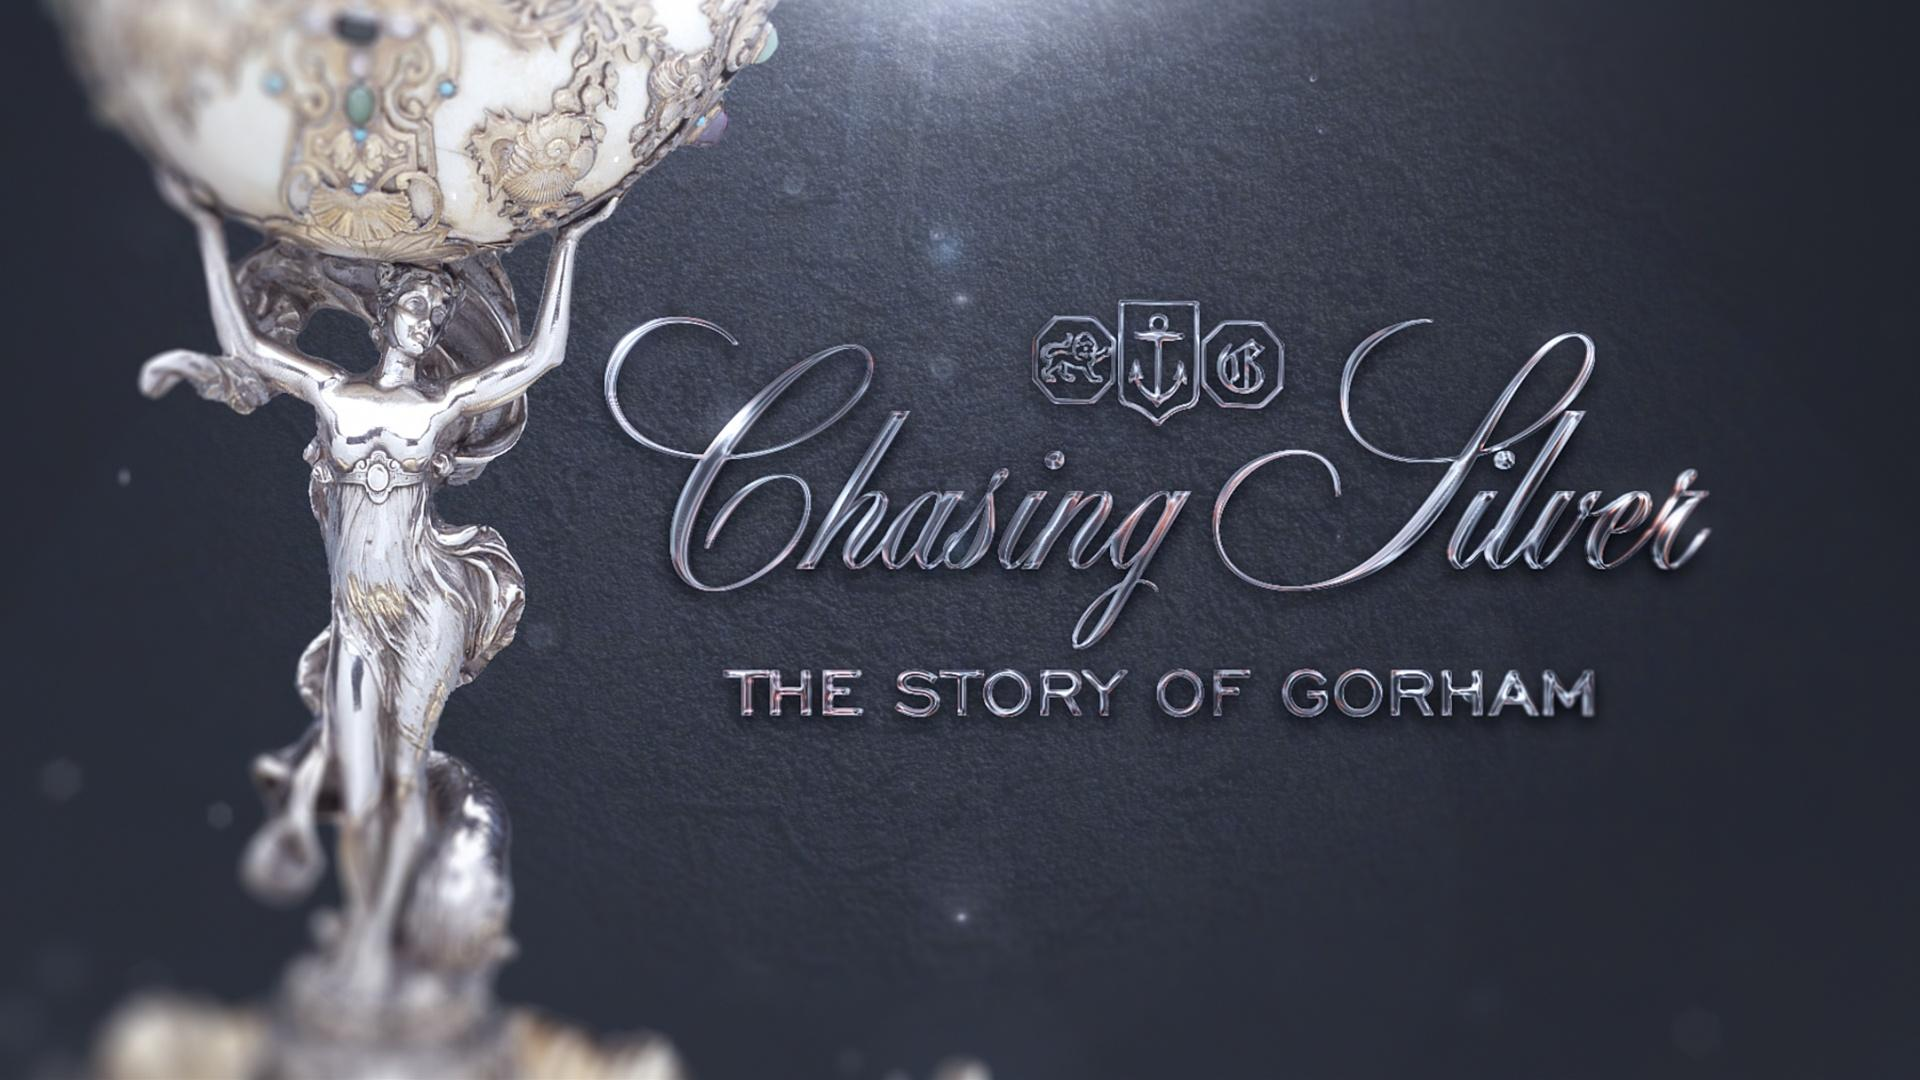 Chasing Silver: The Story of Gorham - Image courtesy of the Dallas Museum of Art